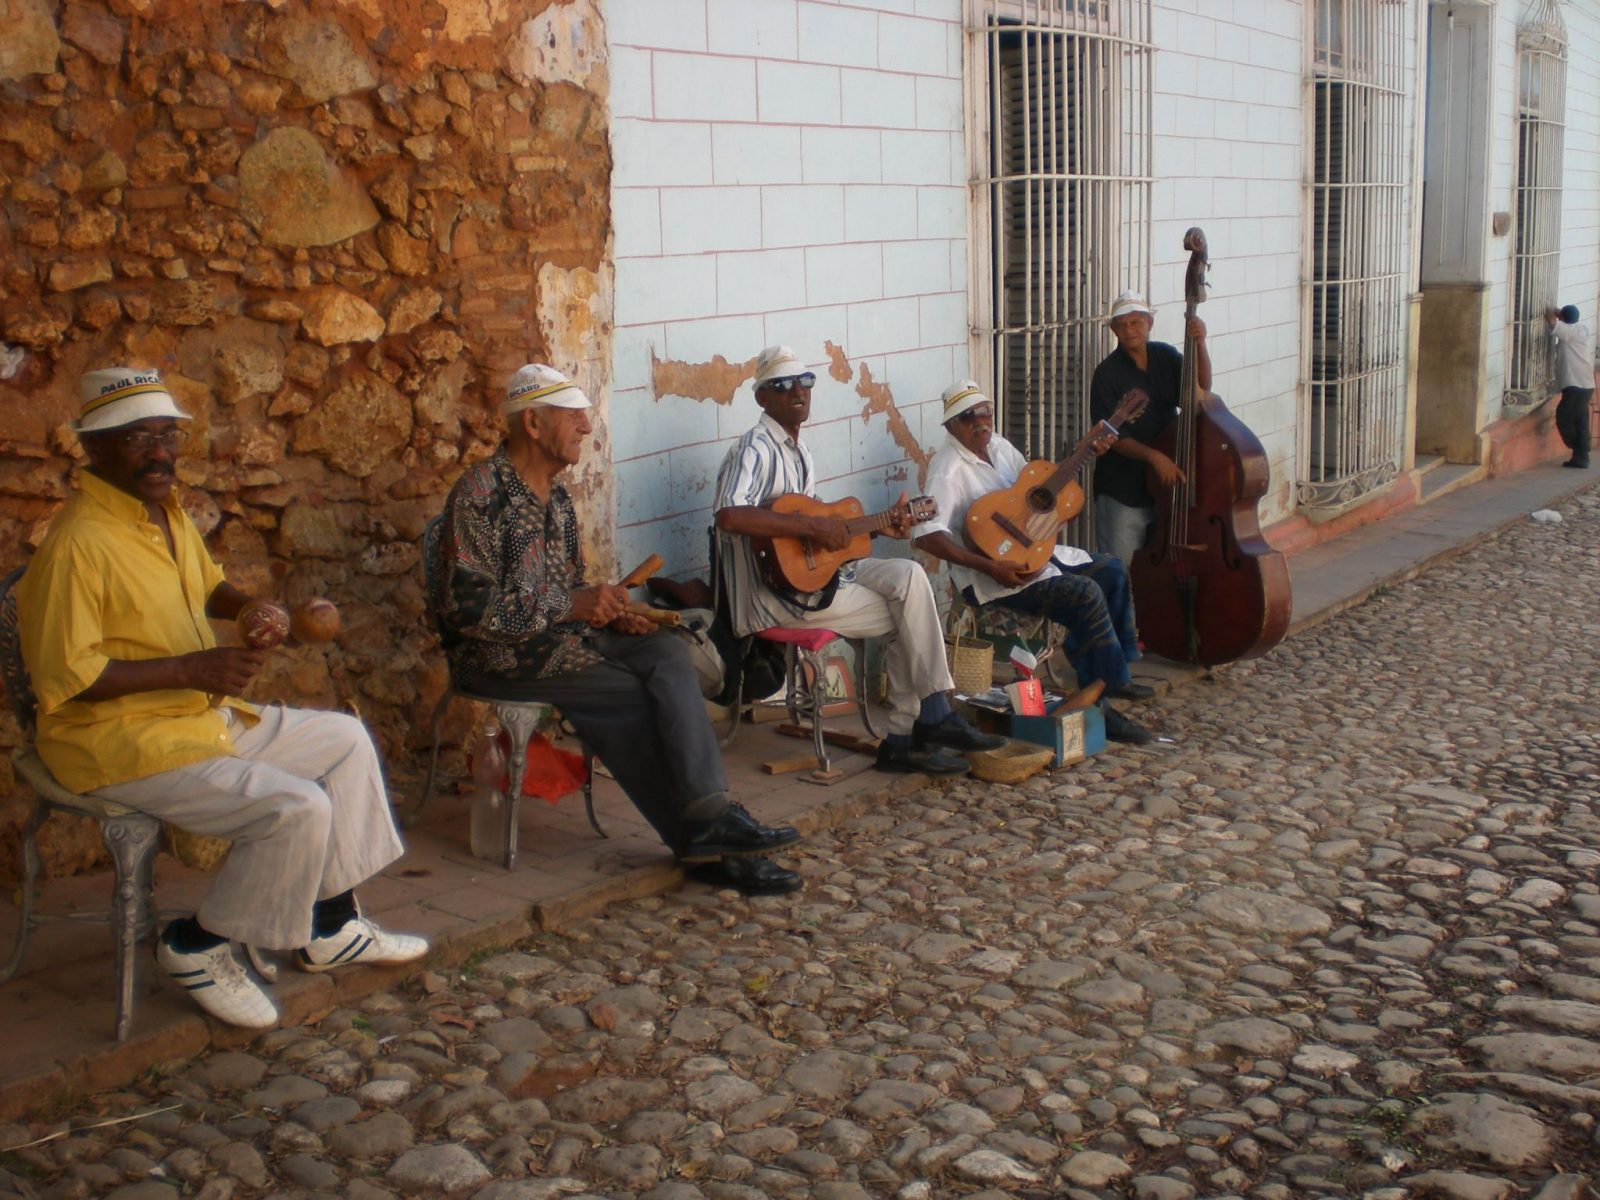 What You Need to Know About Cuba